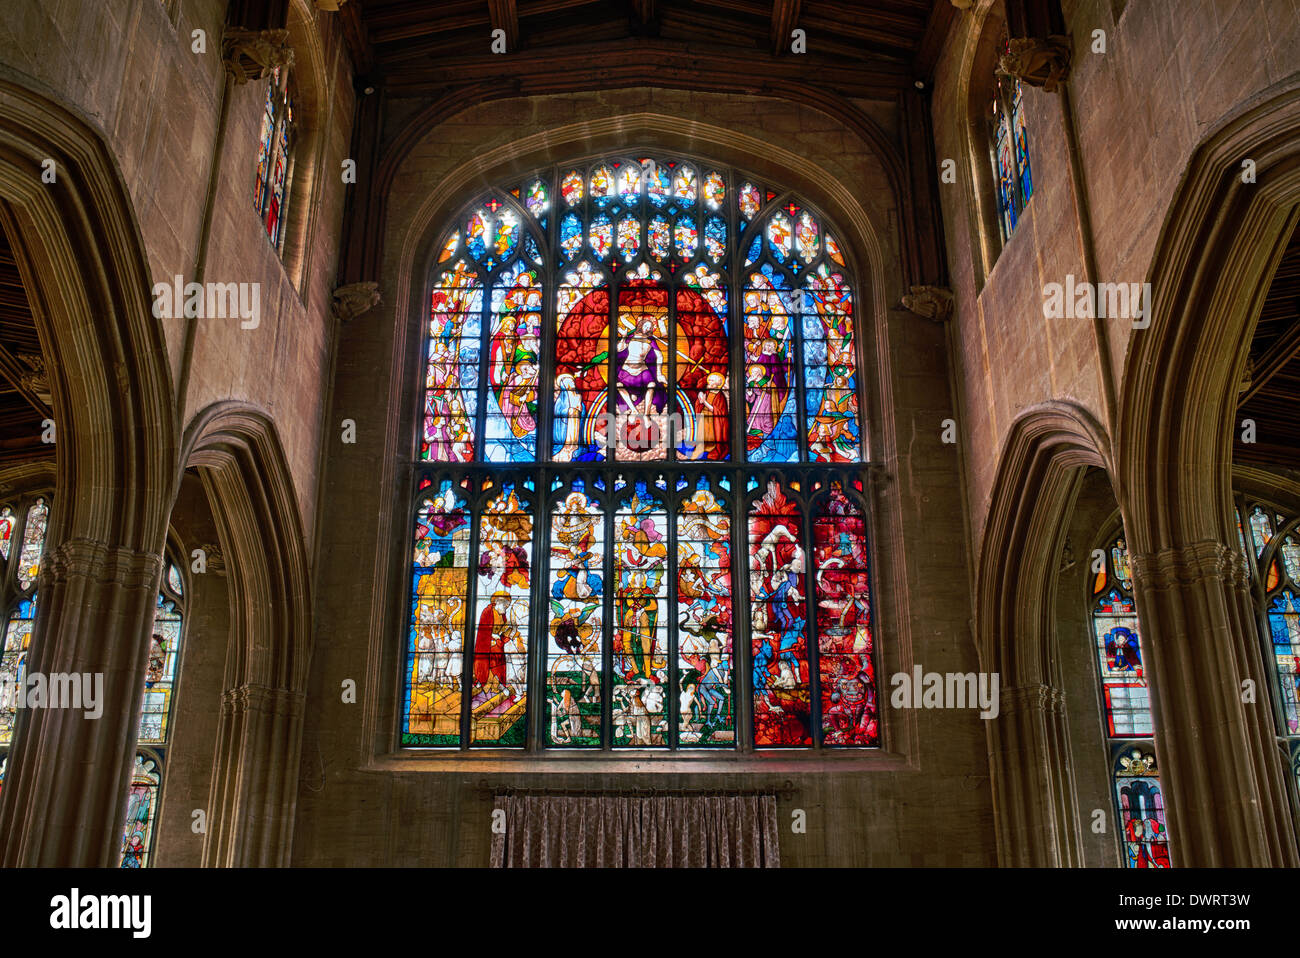 The Last Judgment window. Medieval stained glass window at Saint Marys church, Fairford, Gloucestershire, England. HDR - Stock Image